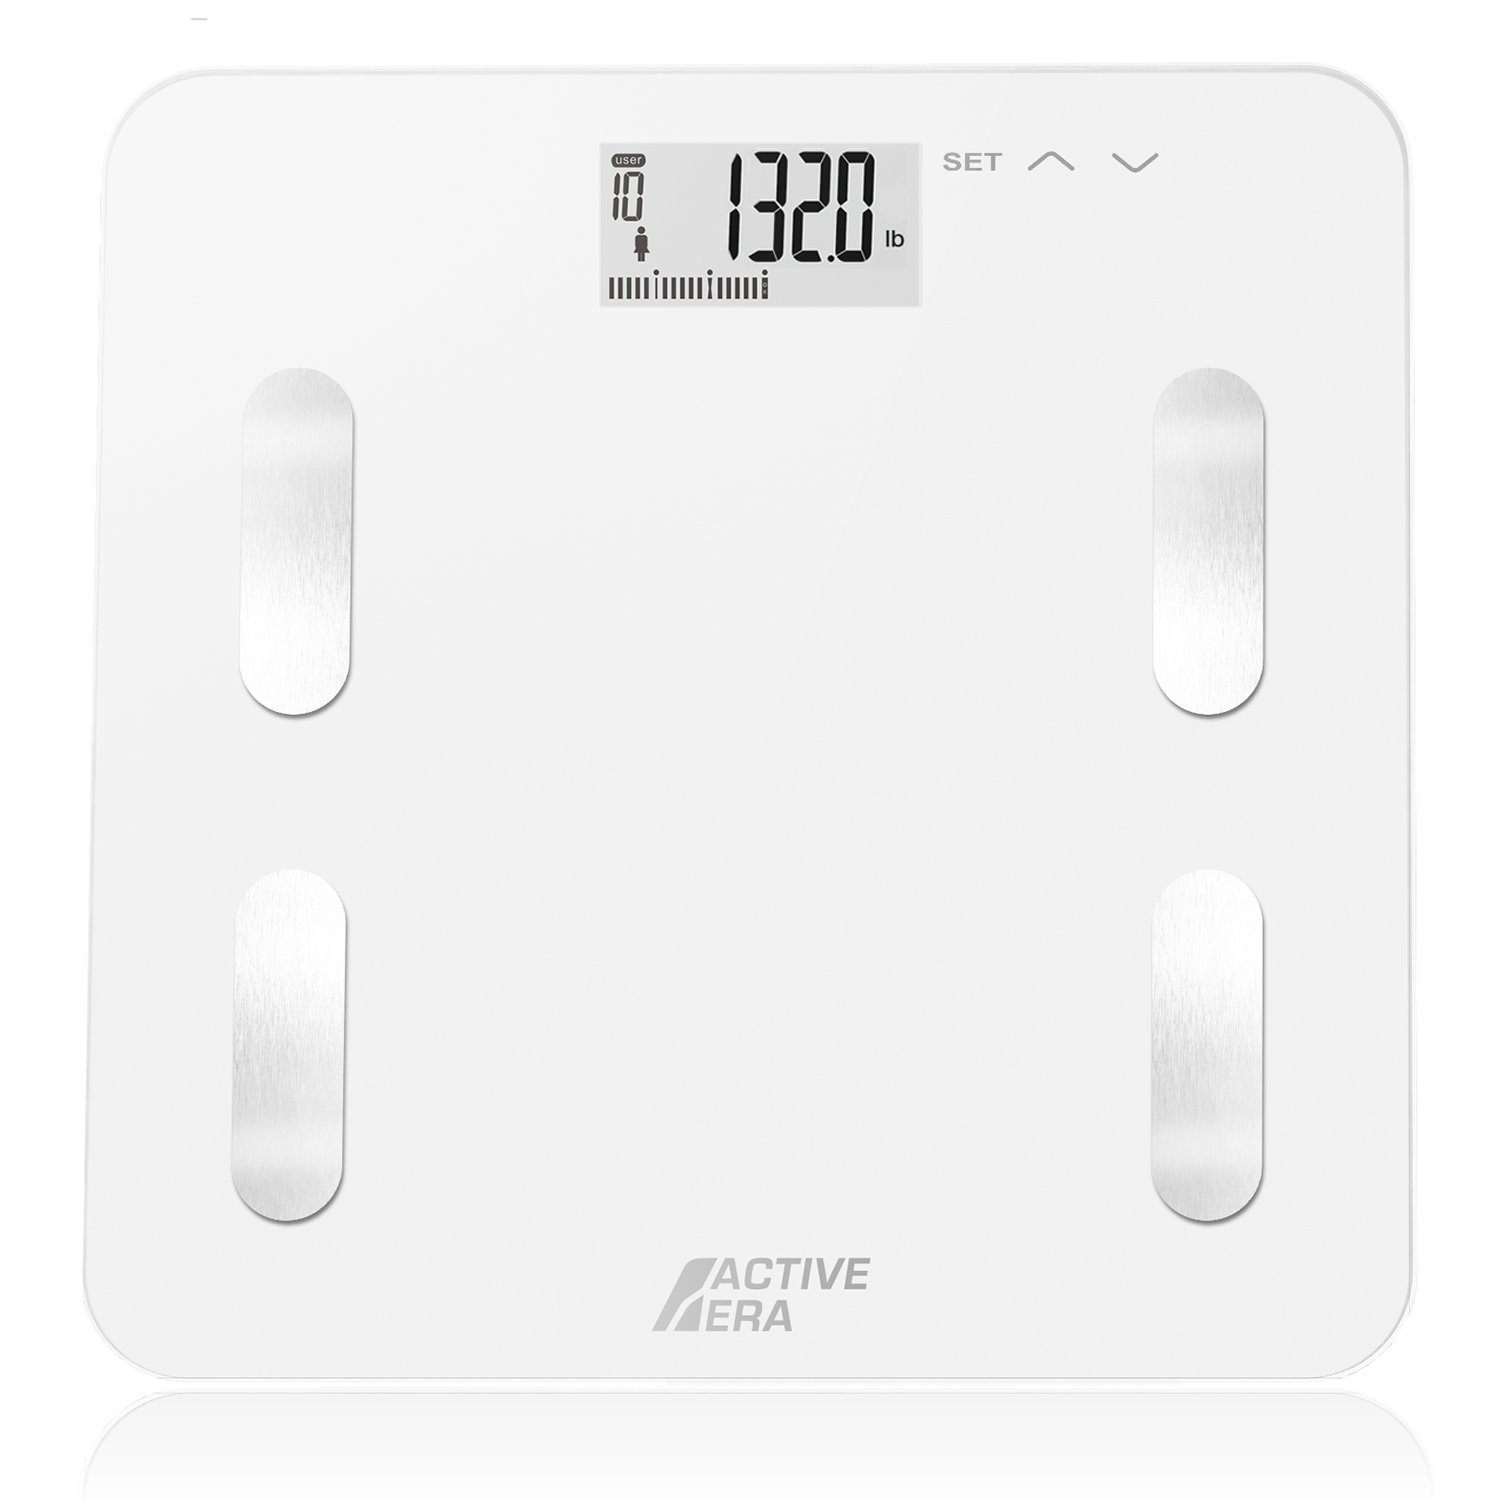 Active Era Ultra Slim Body Fat Bathroom Scale with BF%, BMI, Bone Mass, Water% and Weight Analysis – Ultra Strong Glass Design with LCD Display, 10 User Profiles and Auto On/Off - Black The Body Source 4332443303